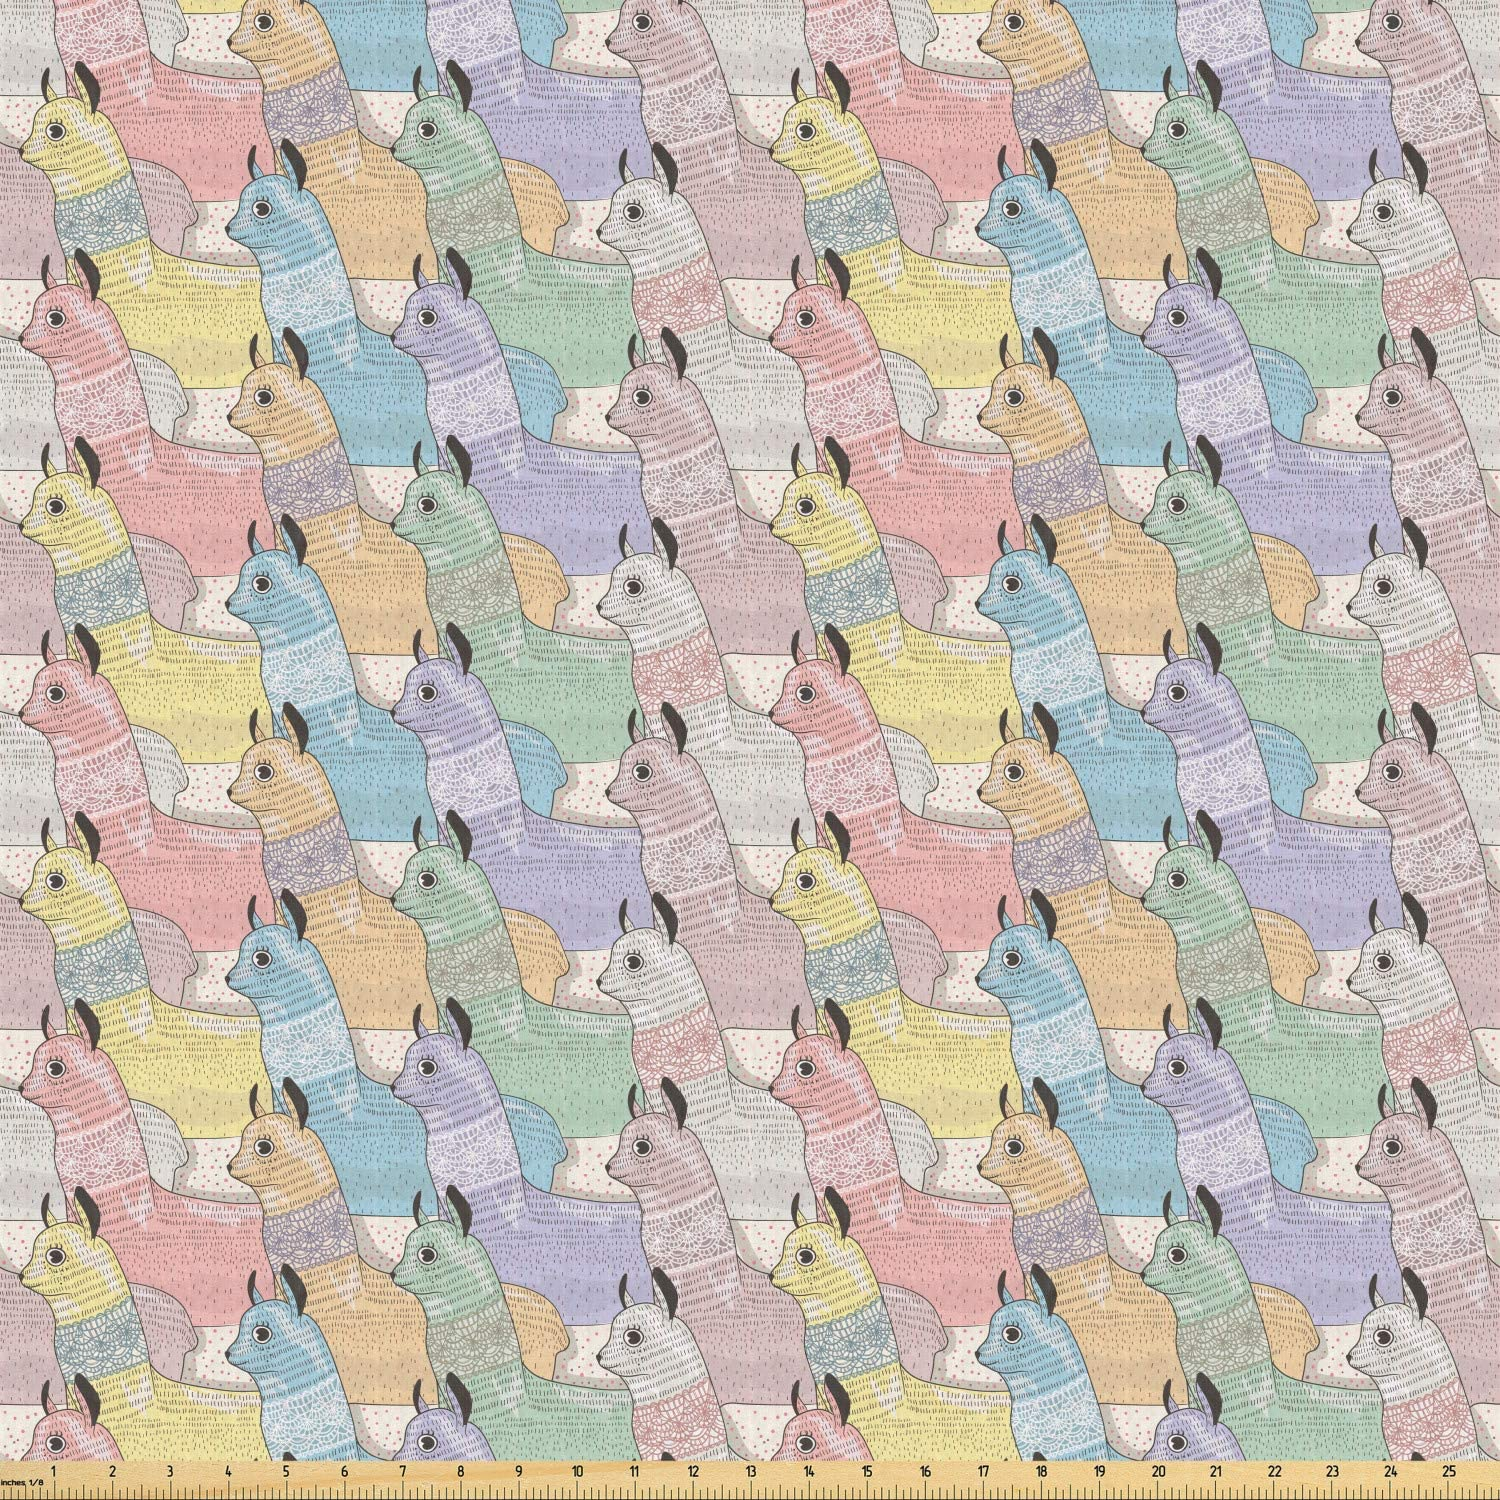 Ambesonne Teen Room Fabric by The Yard, Little Alpacas Pattern Soft Toned Camel Animal Kids Nursery Folkloric Print, Stretch Knit Fabric for Clothing Sewing and Arts Crafts, Multicolor